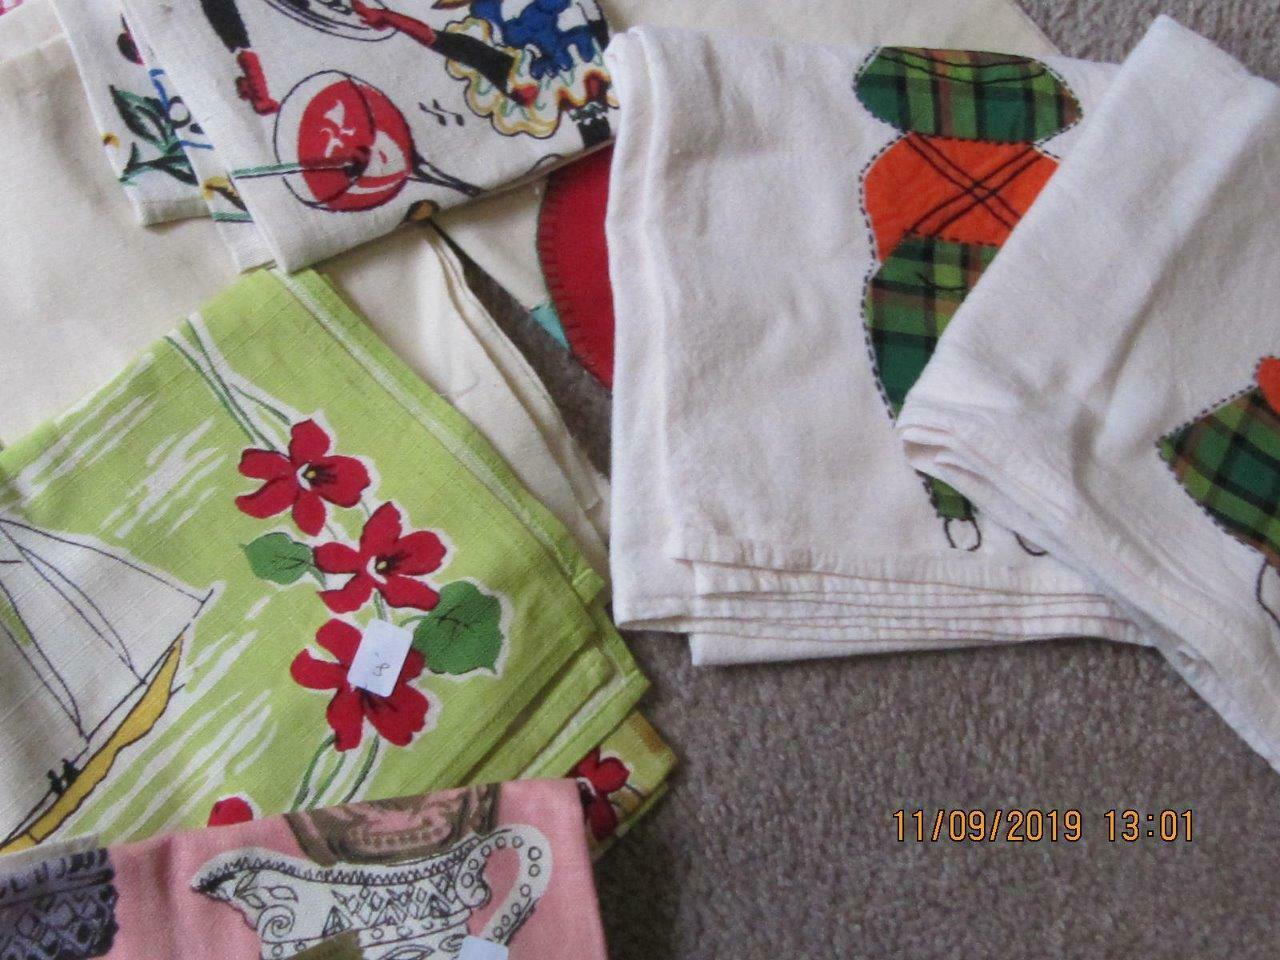 Lot of 25 Vintage teatowels dish towels assorted sizes colors condition fabrics image 4